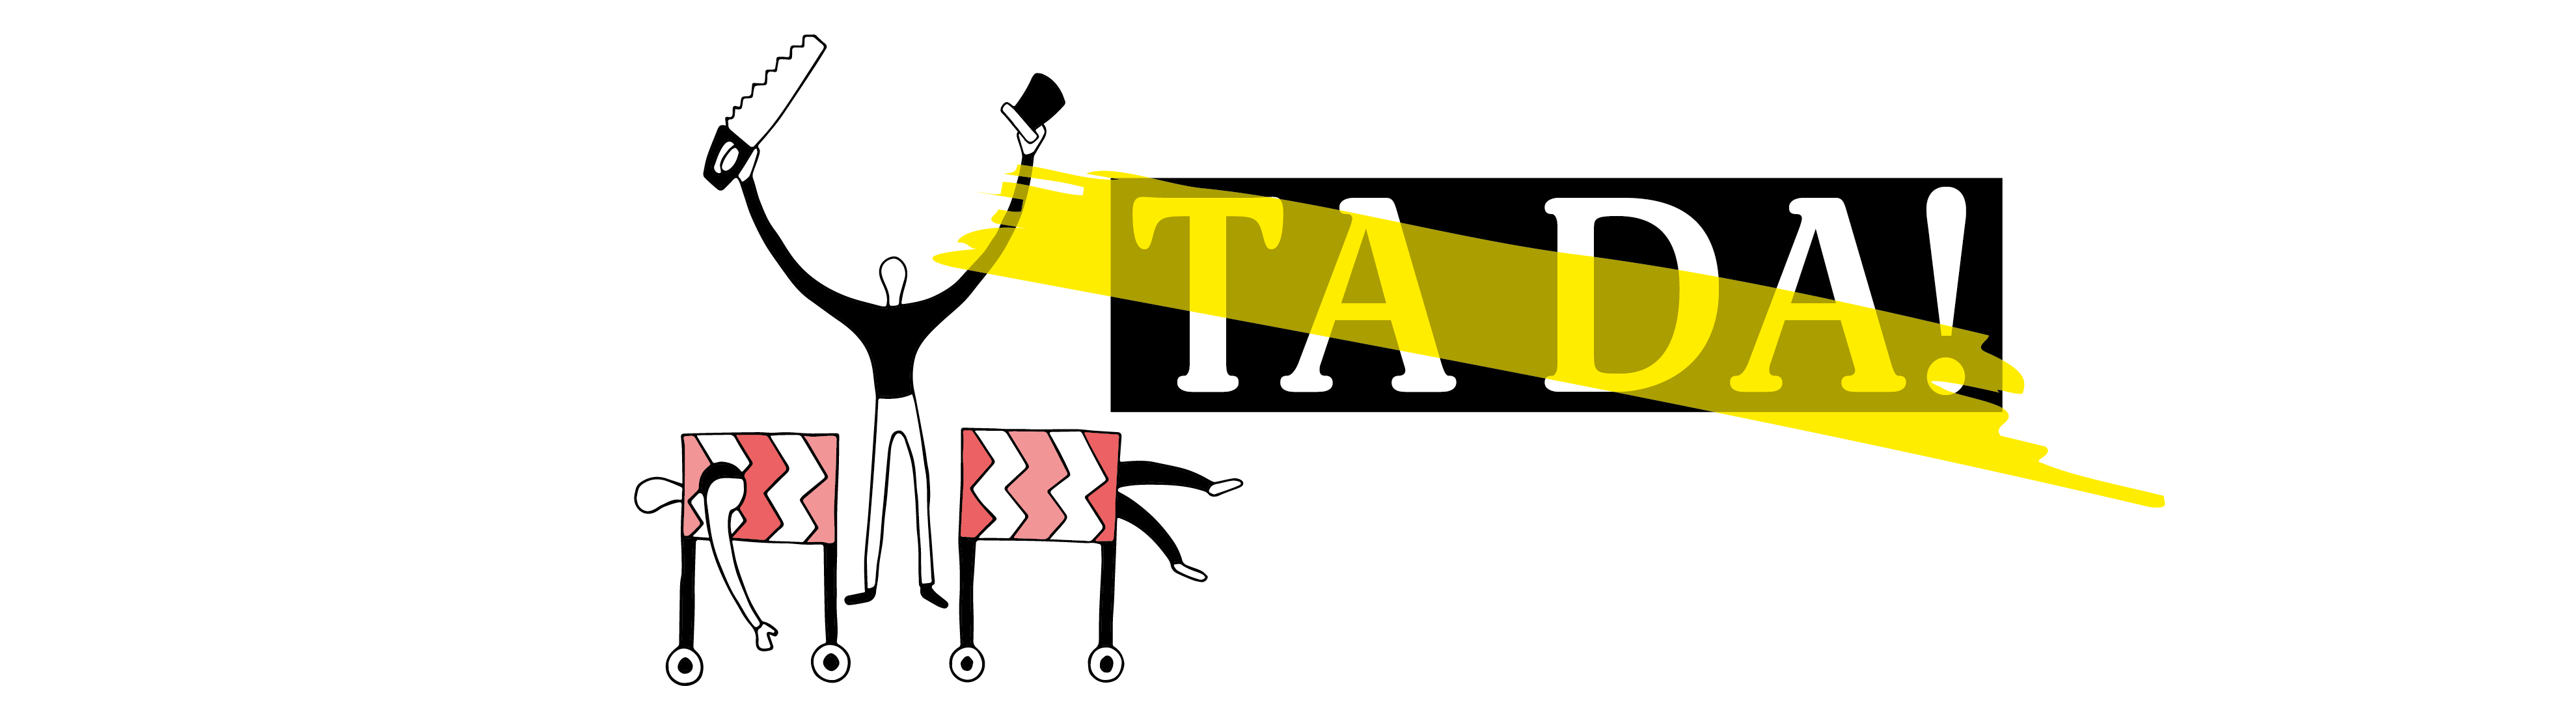 Avoid the big TA-DA. And get your team behind your brand